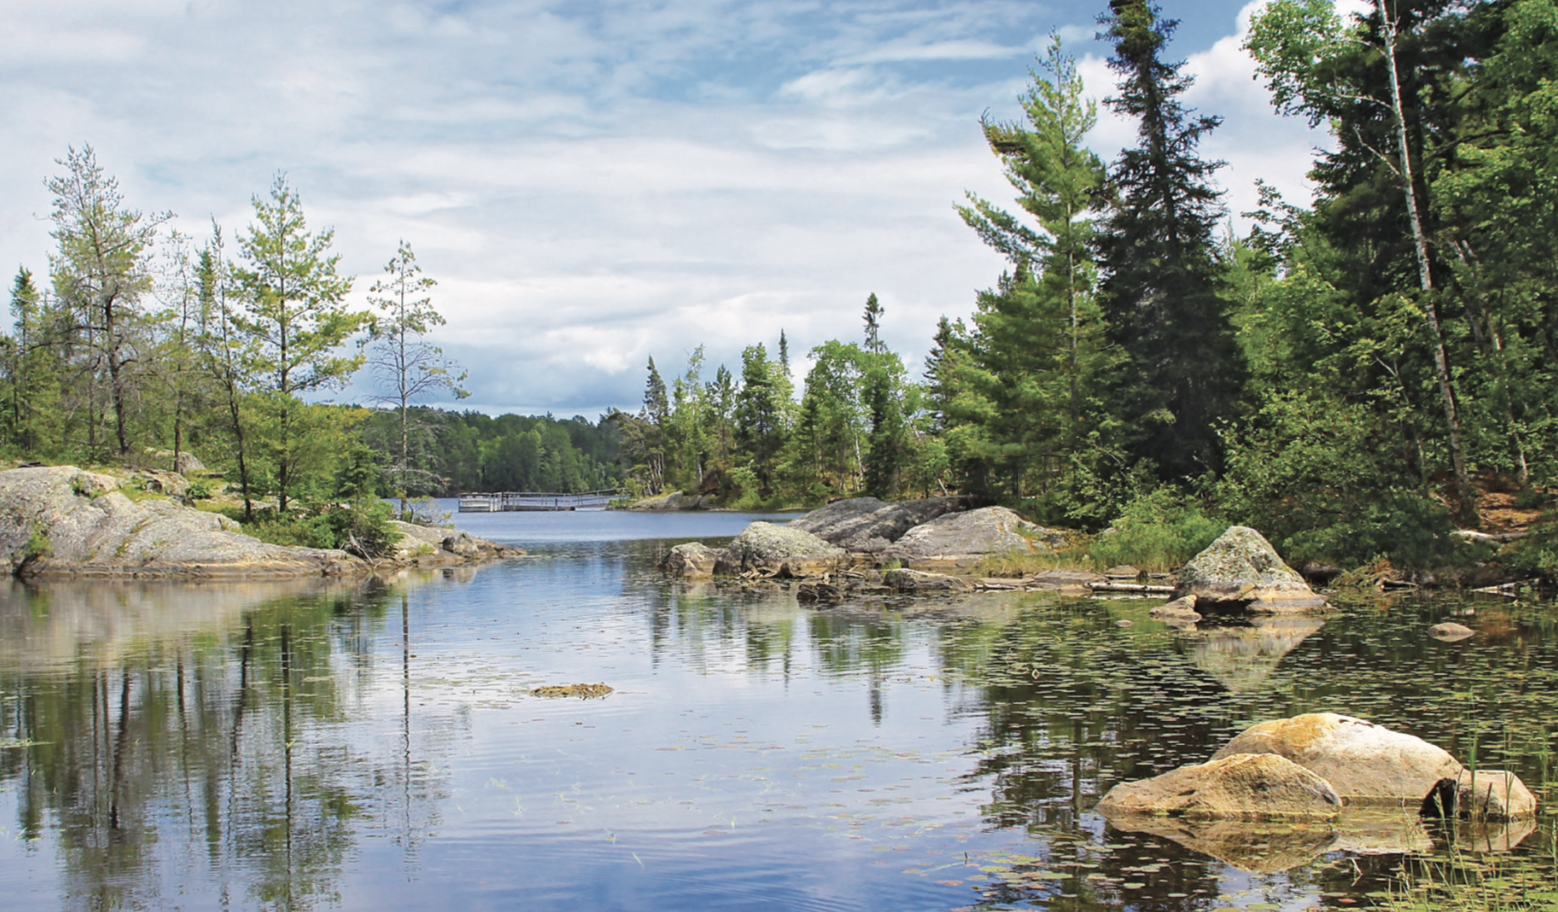 Minnesota camping, secluded places to camp in Minnesota